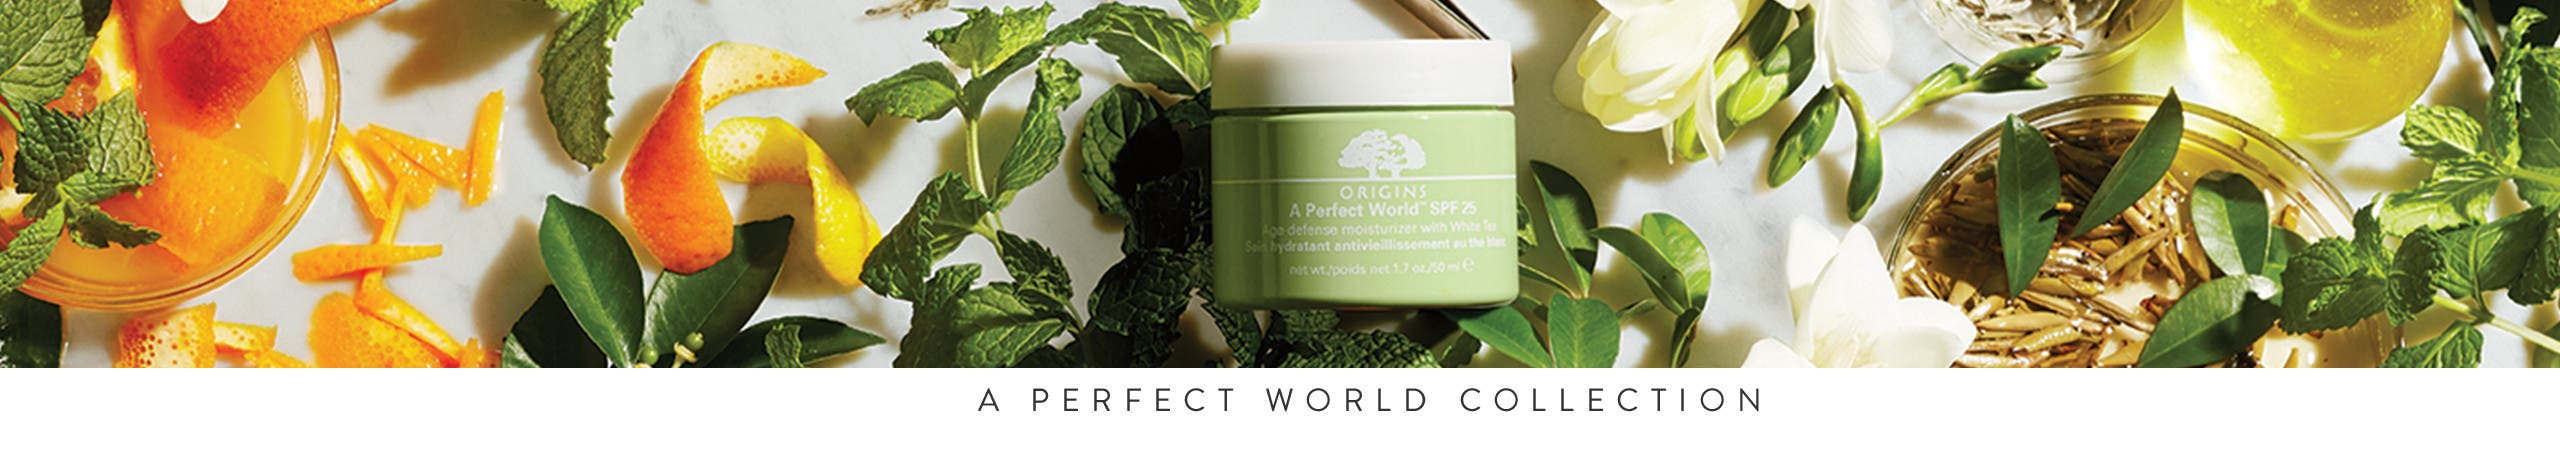 A Perfect World collection.